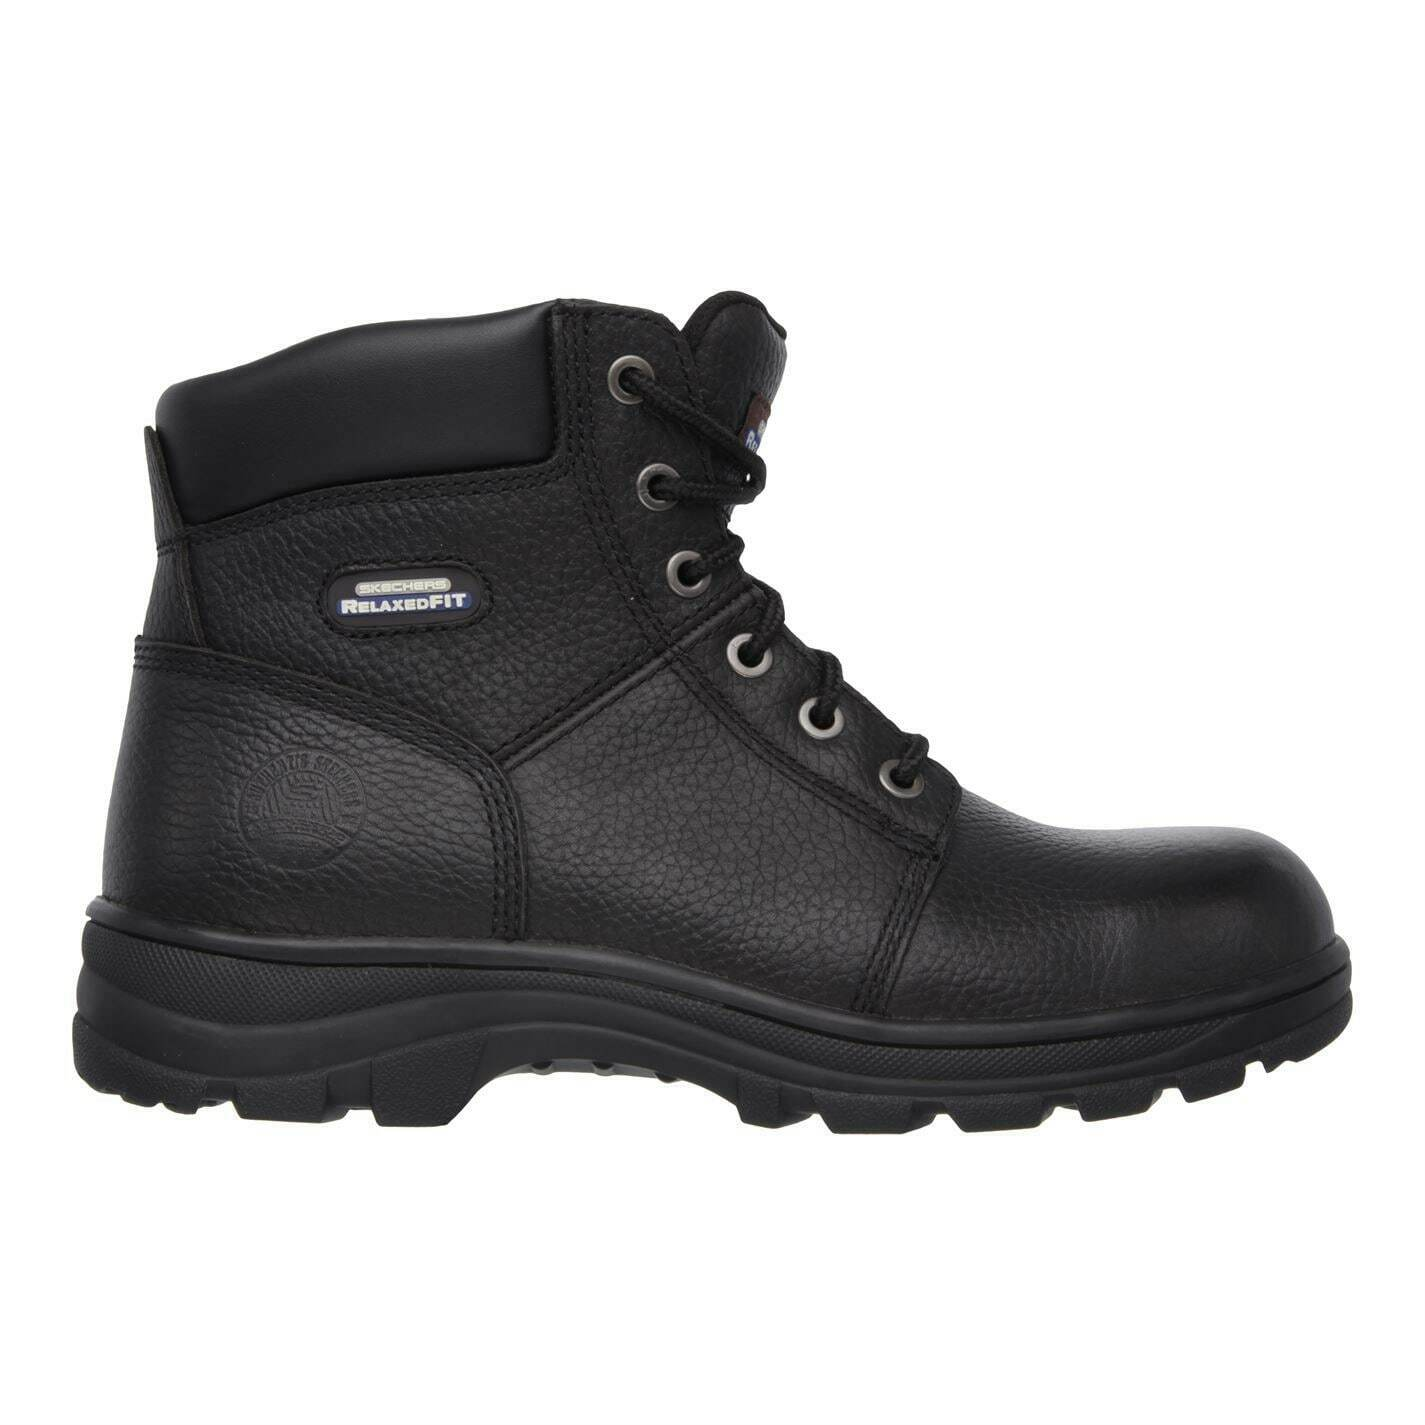 Skechers Mens Work Workshire Safety Boots Lace Up Leather Upper Memory Foam